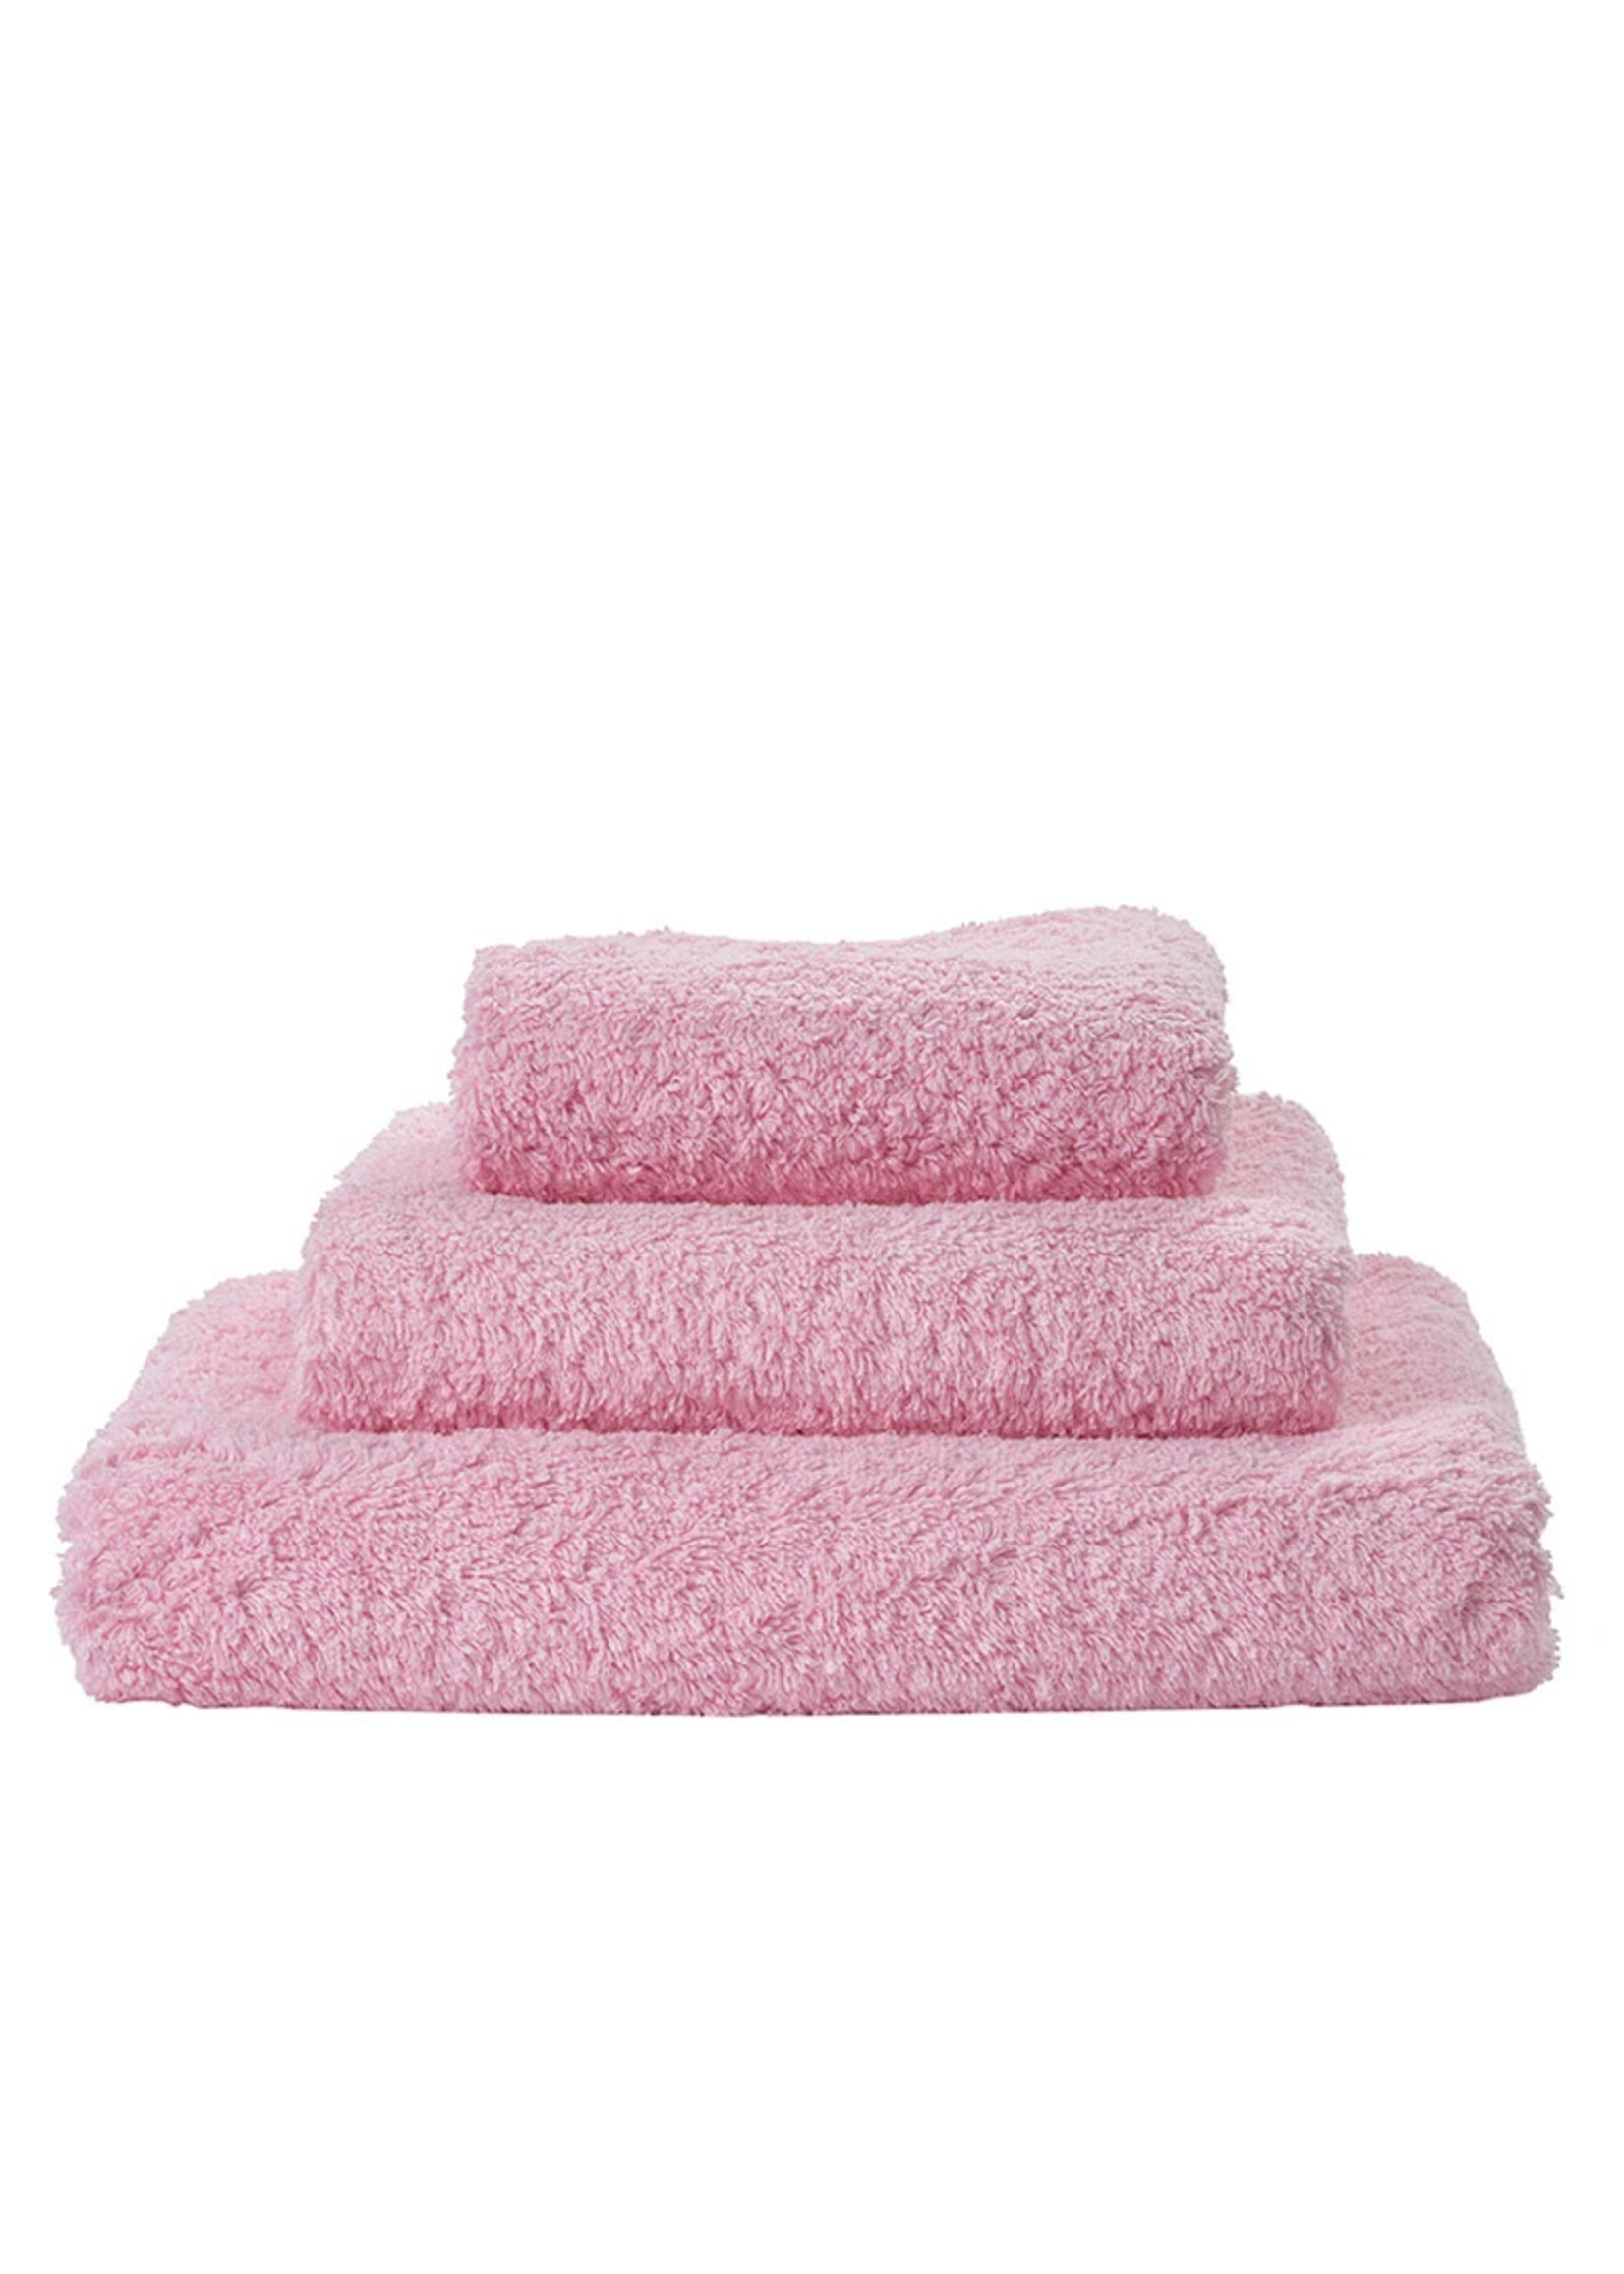 Abyss & Habidecor Super Pile Pink Lady Towels